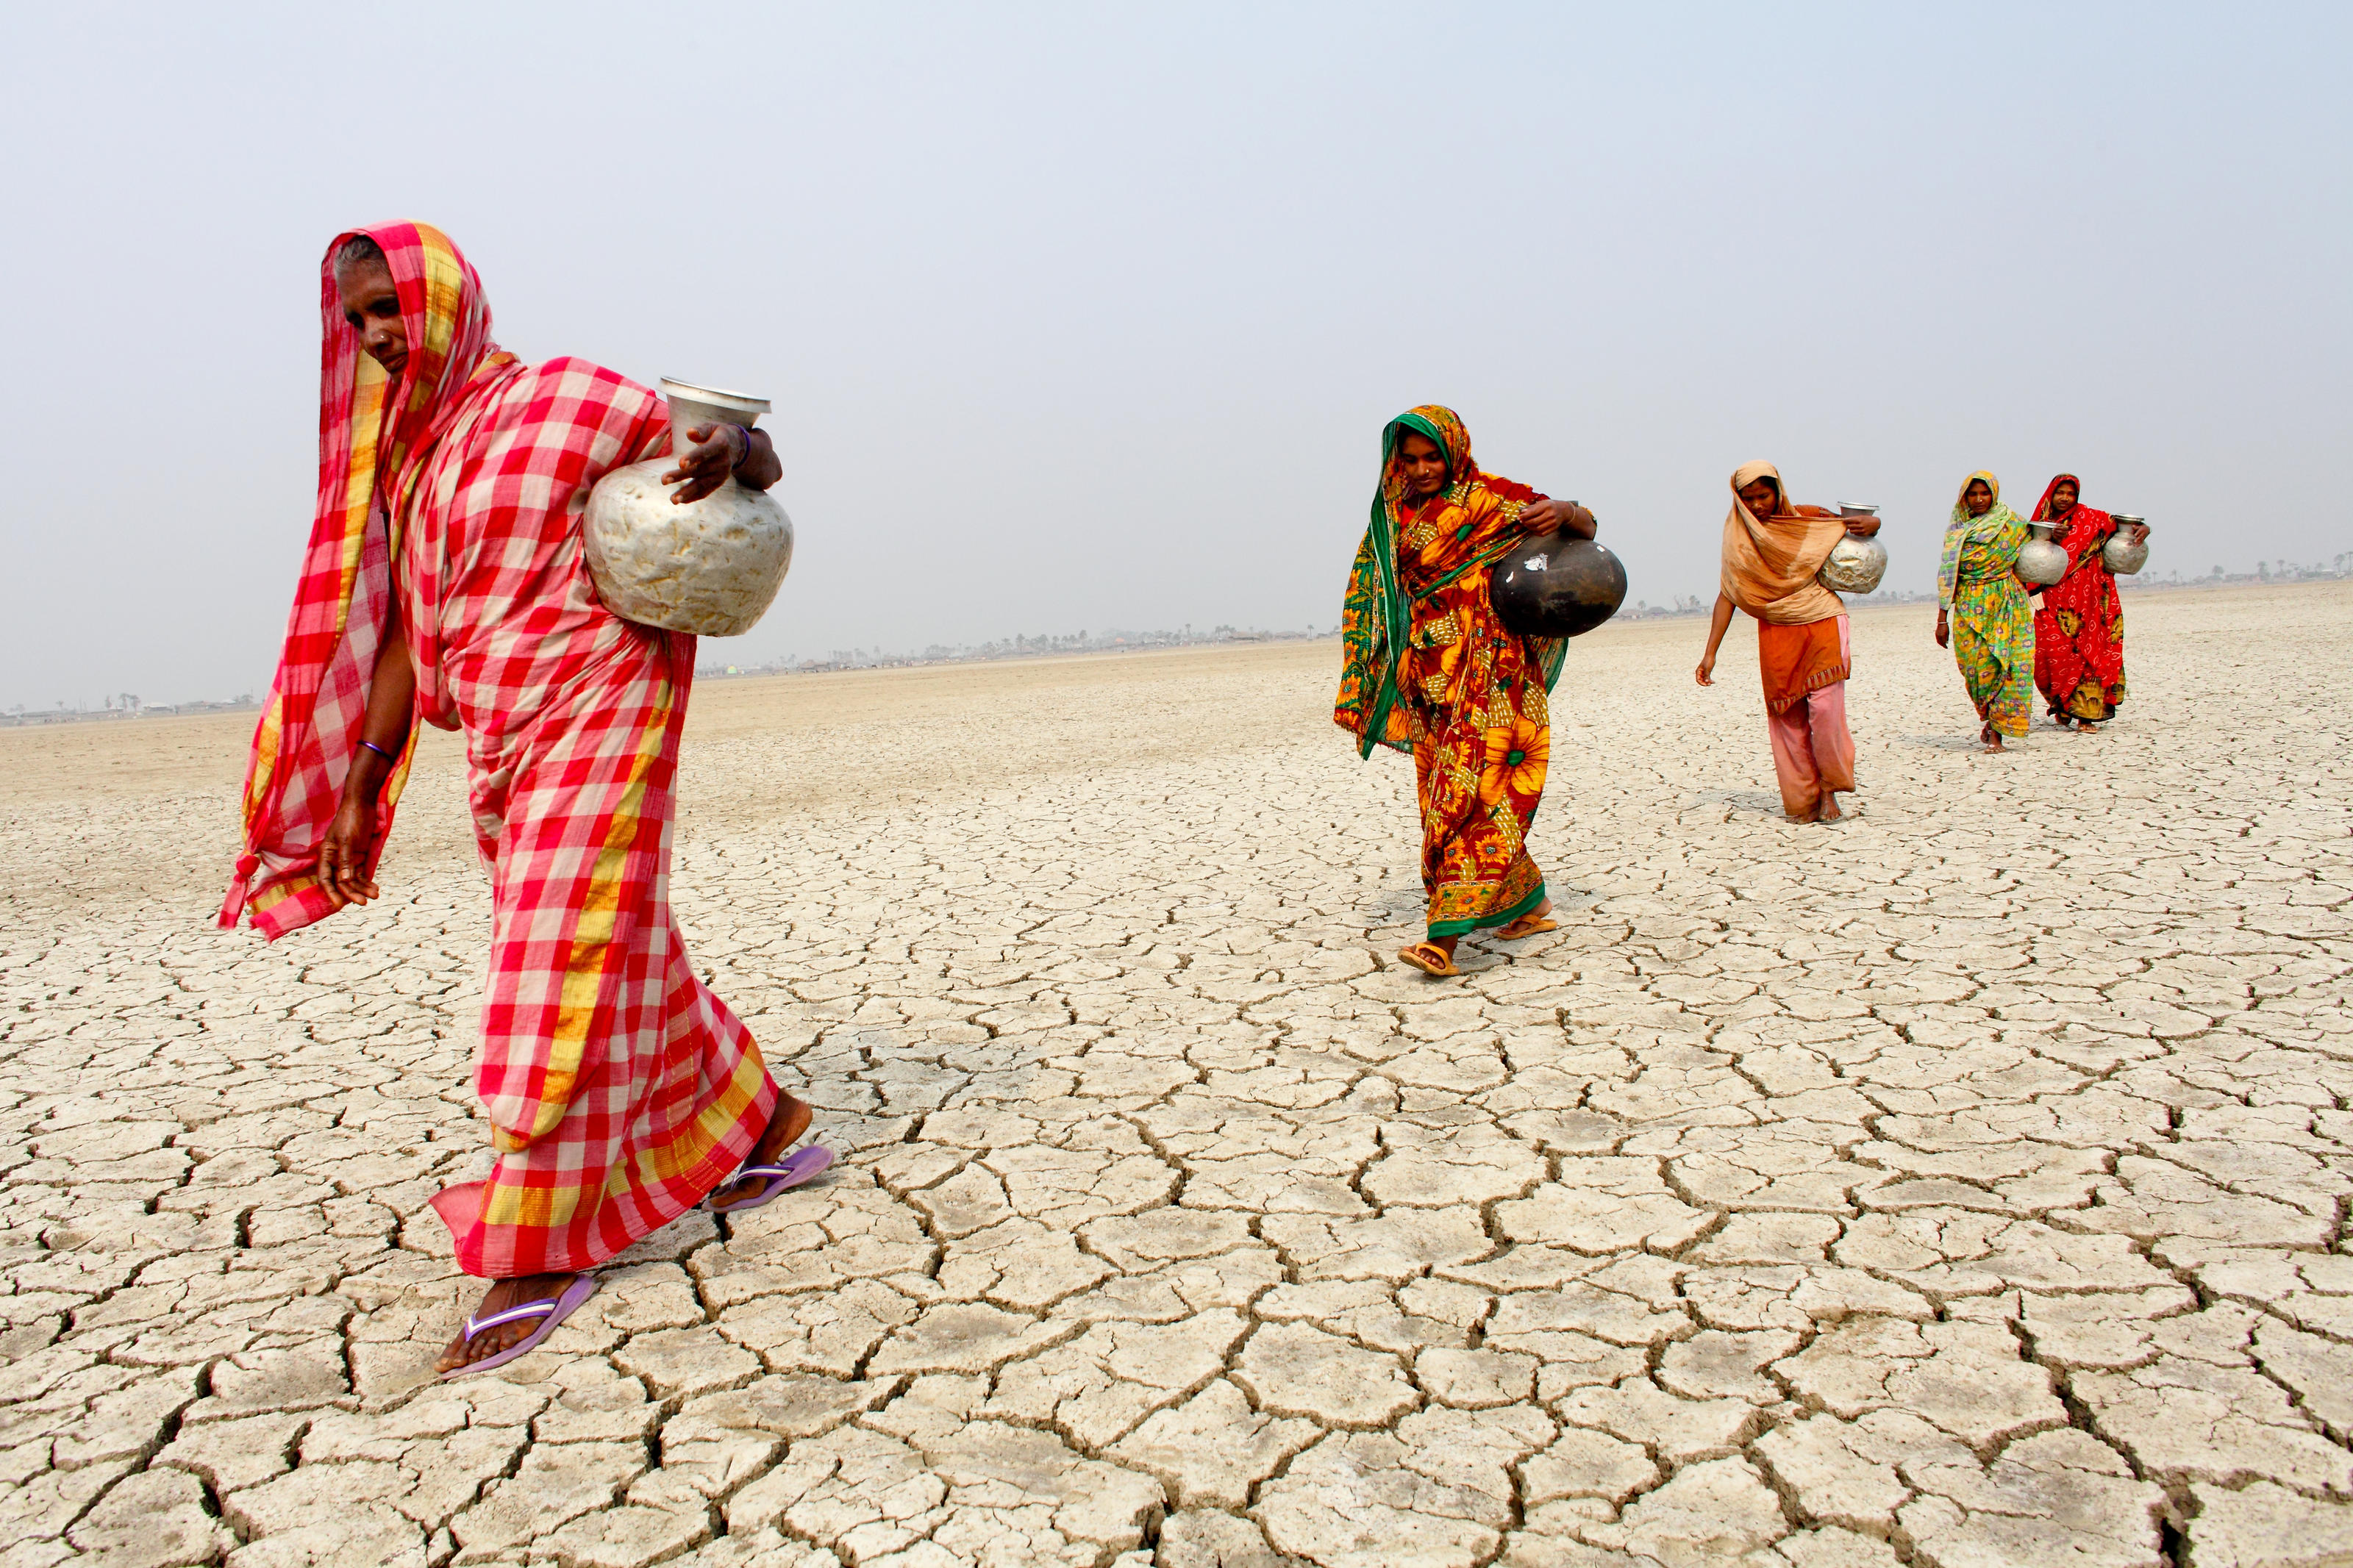 When collecting water from the local community in Koyra, Bangladesh, women must walk across an area of barren ground that has been contaminated with saline following cyclone Aila in 2009.